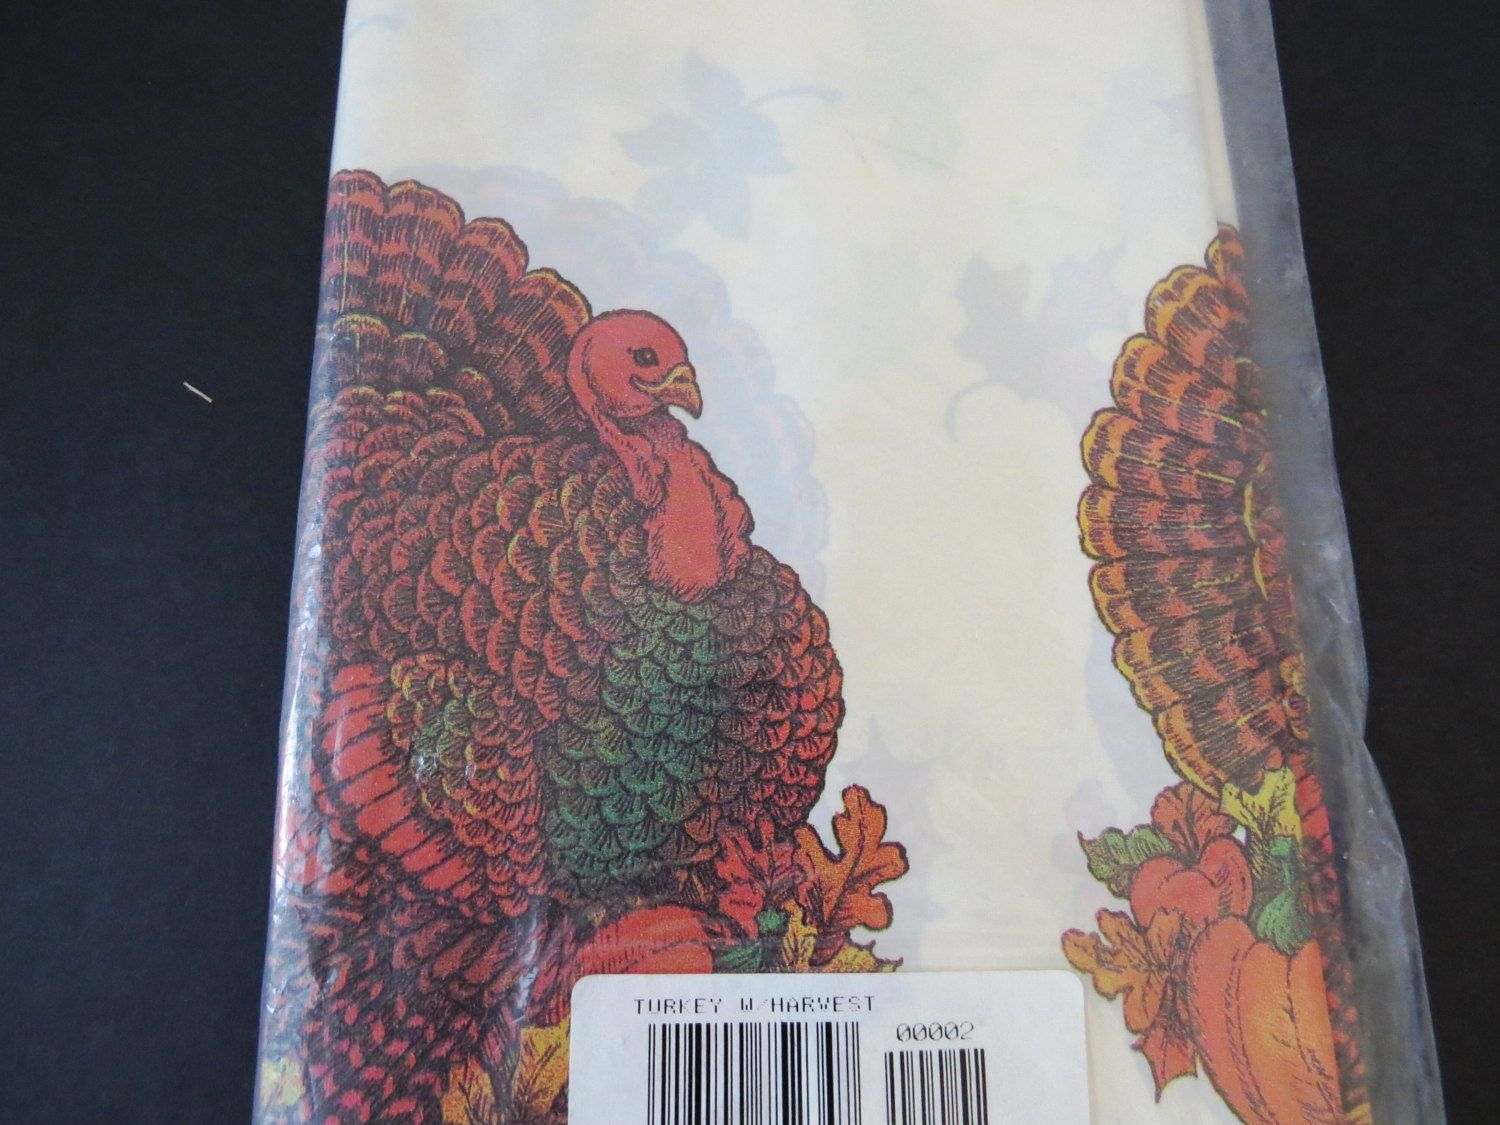 Turkey Thanksgiving Plastic Tablecloth By American Greetings   Turkey  Pumpkins Corn   Autumn Harvest Decor